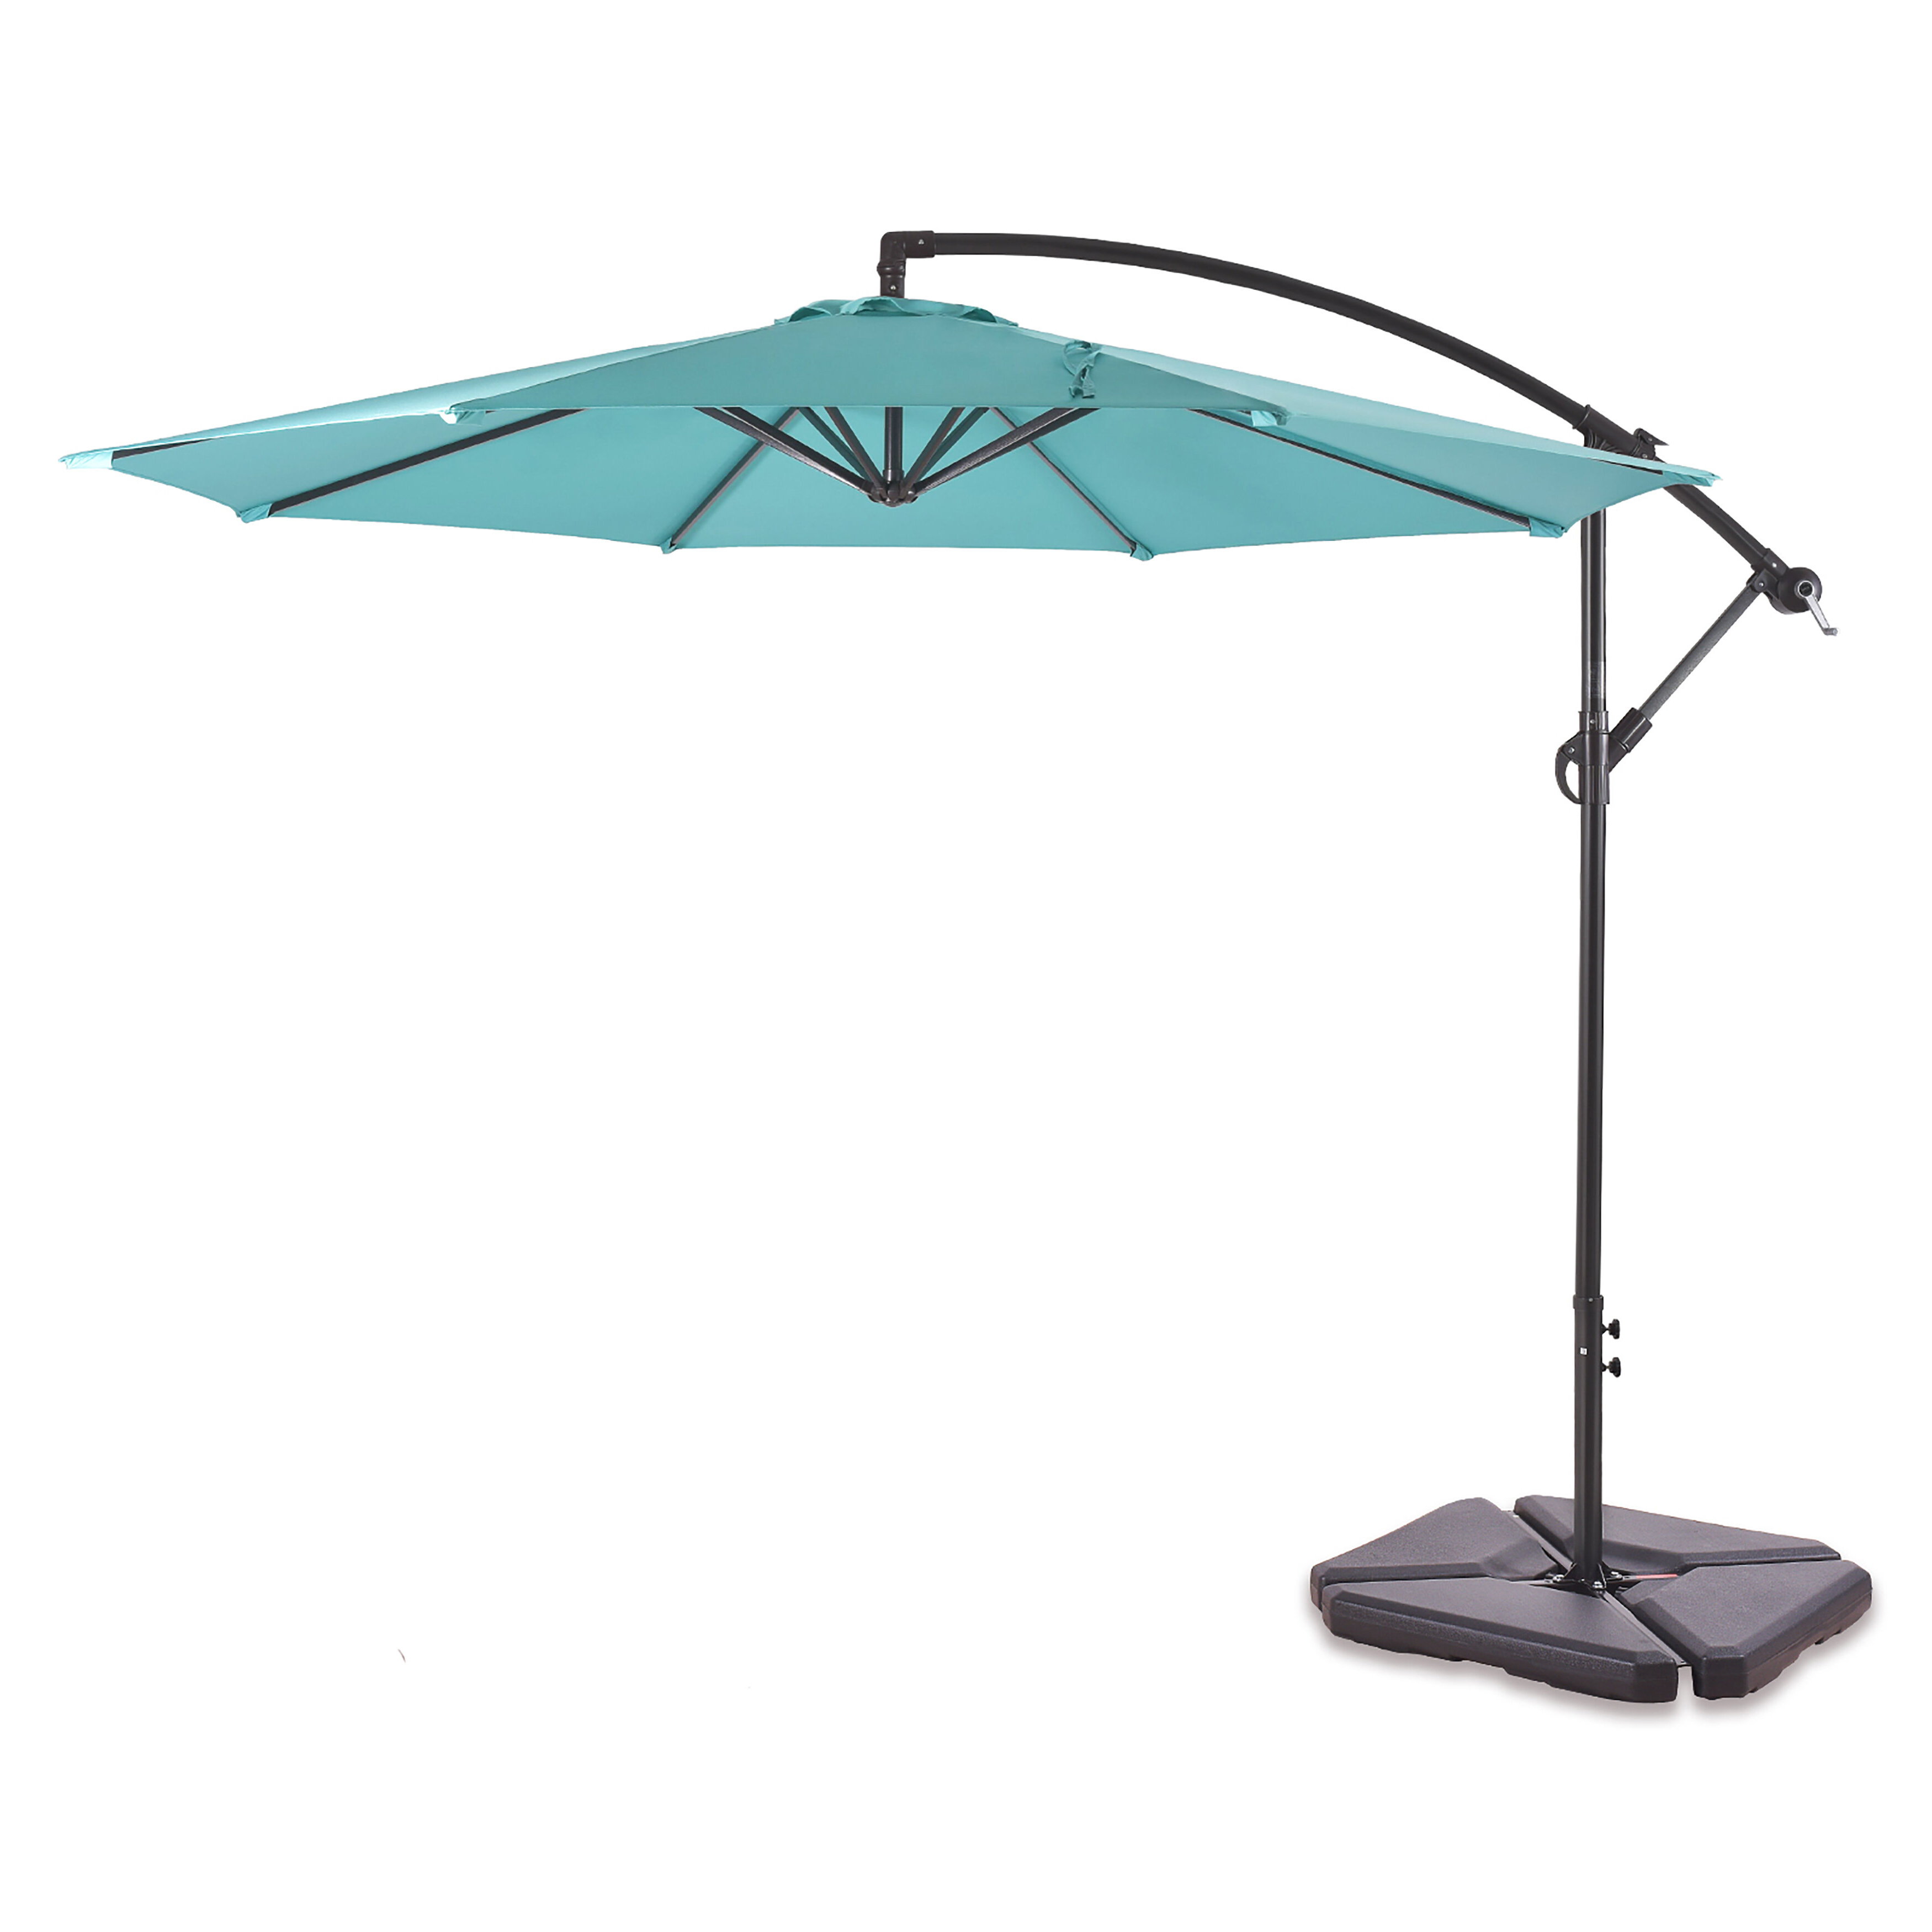 Maglione Fabric 4cantilever Umbrellas Pertaining To Most Popular Karr 10' Cantilever Umbrella (View 18 of 20)